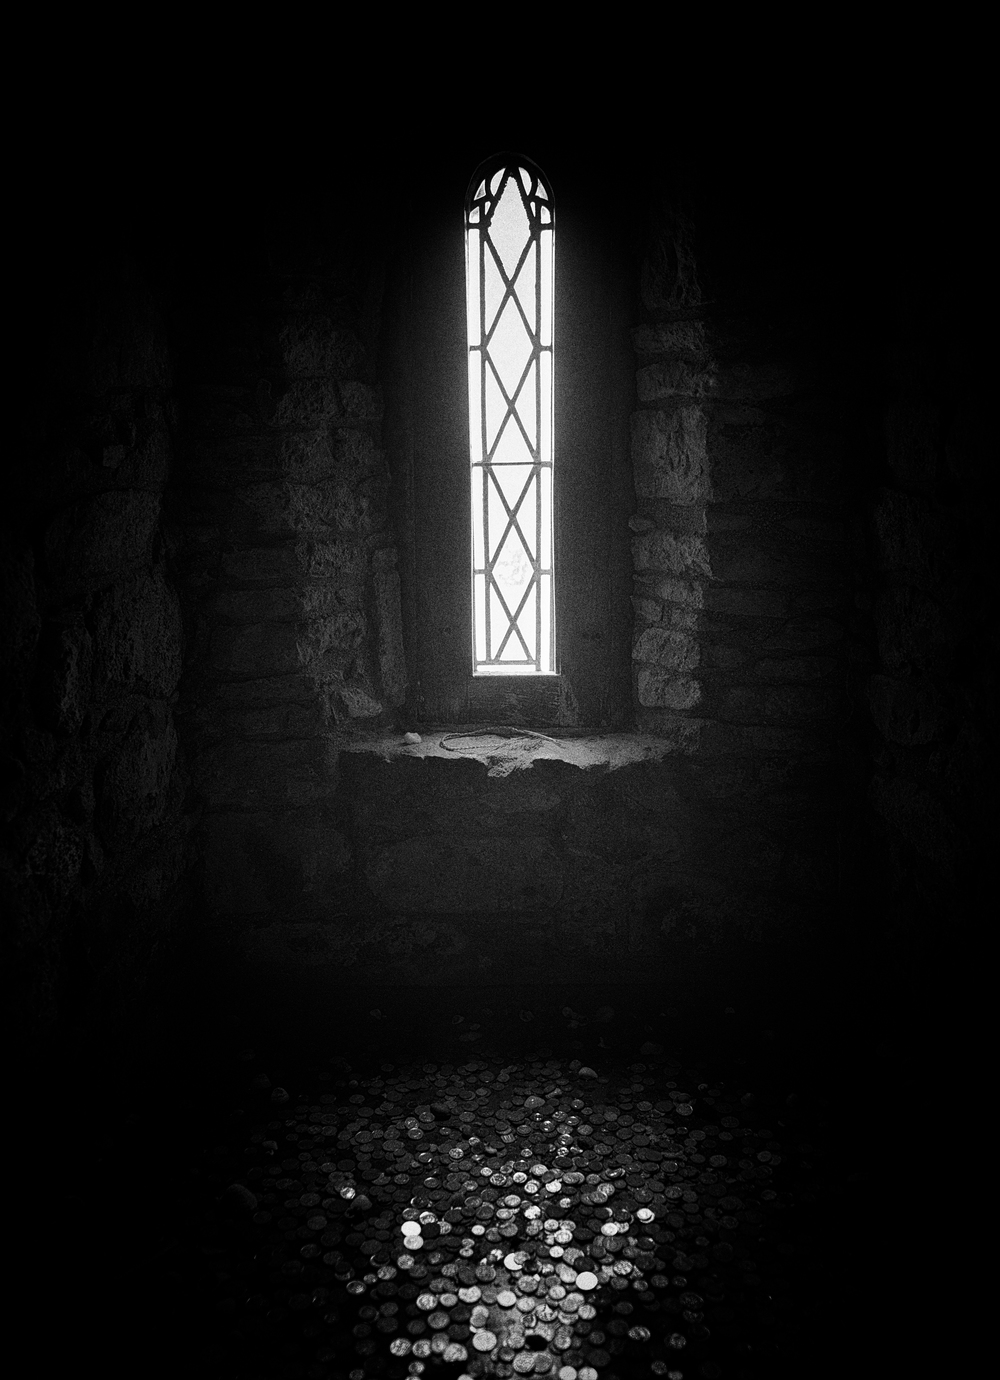 A window in the Tower of St. Clements Church, South Harris.